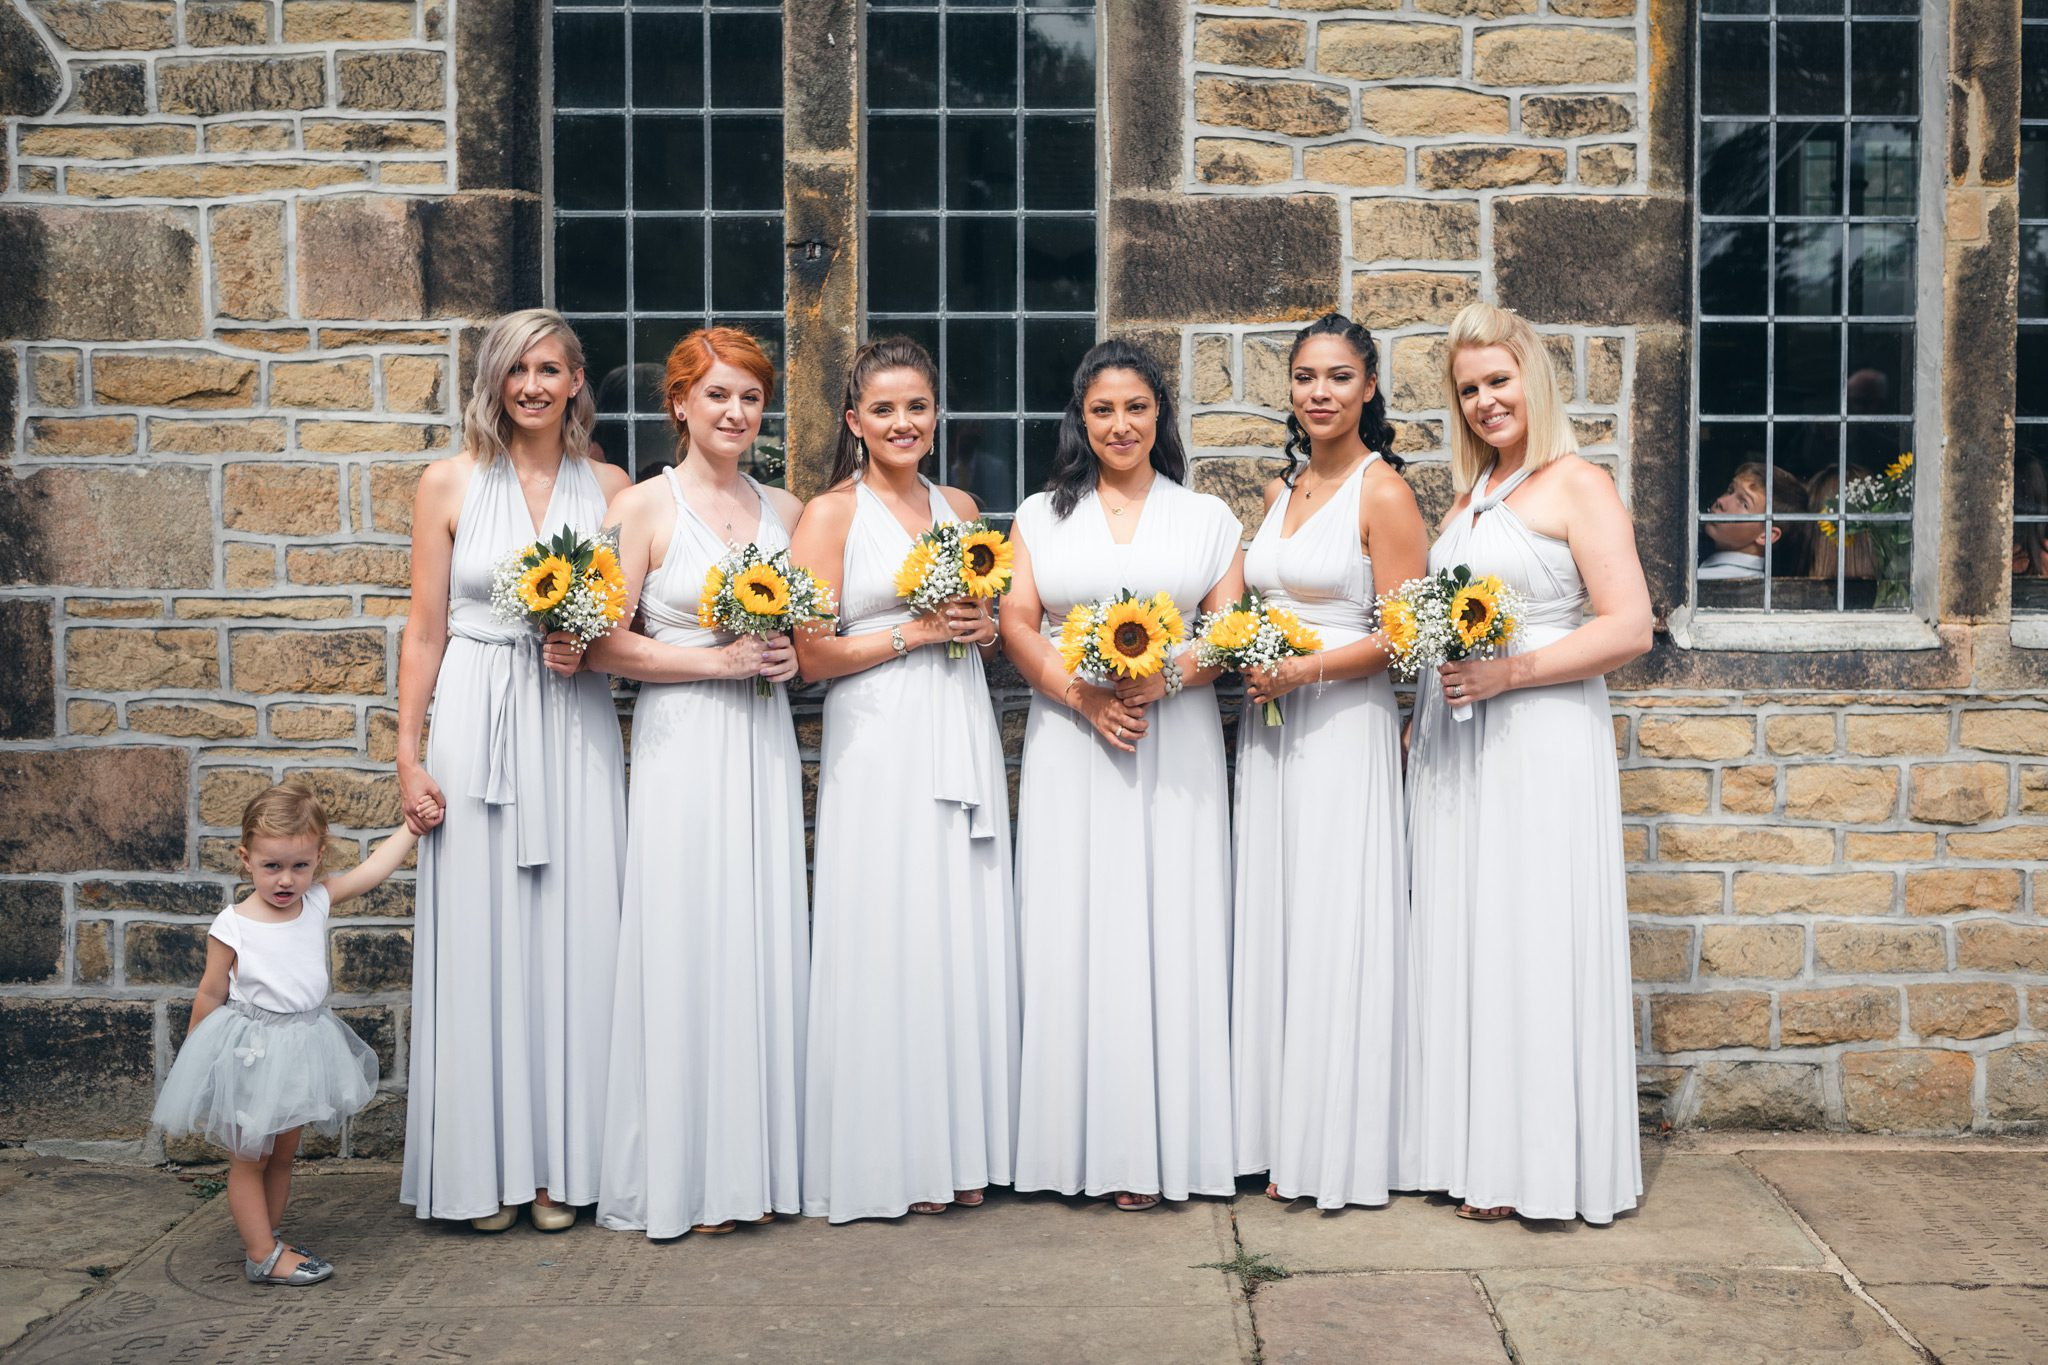 Seven bridesmaids waiting outside of a church in the Peak District